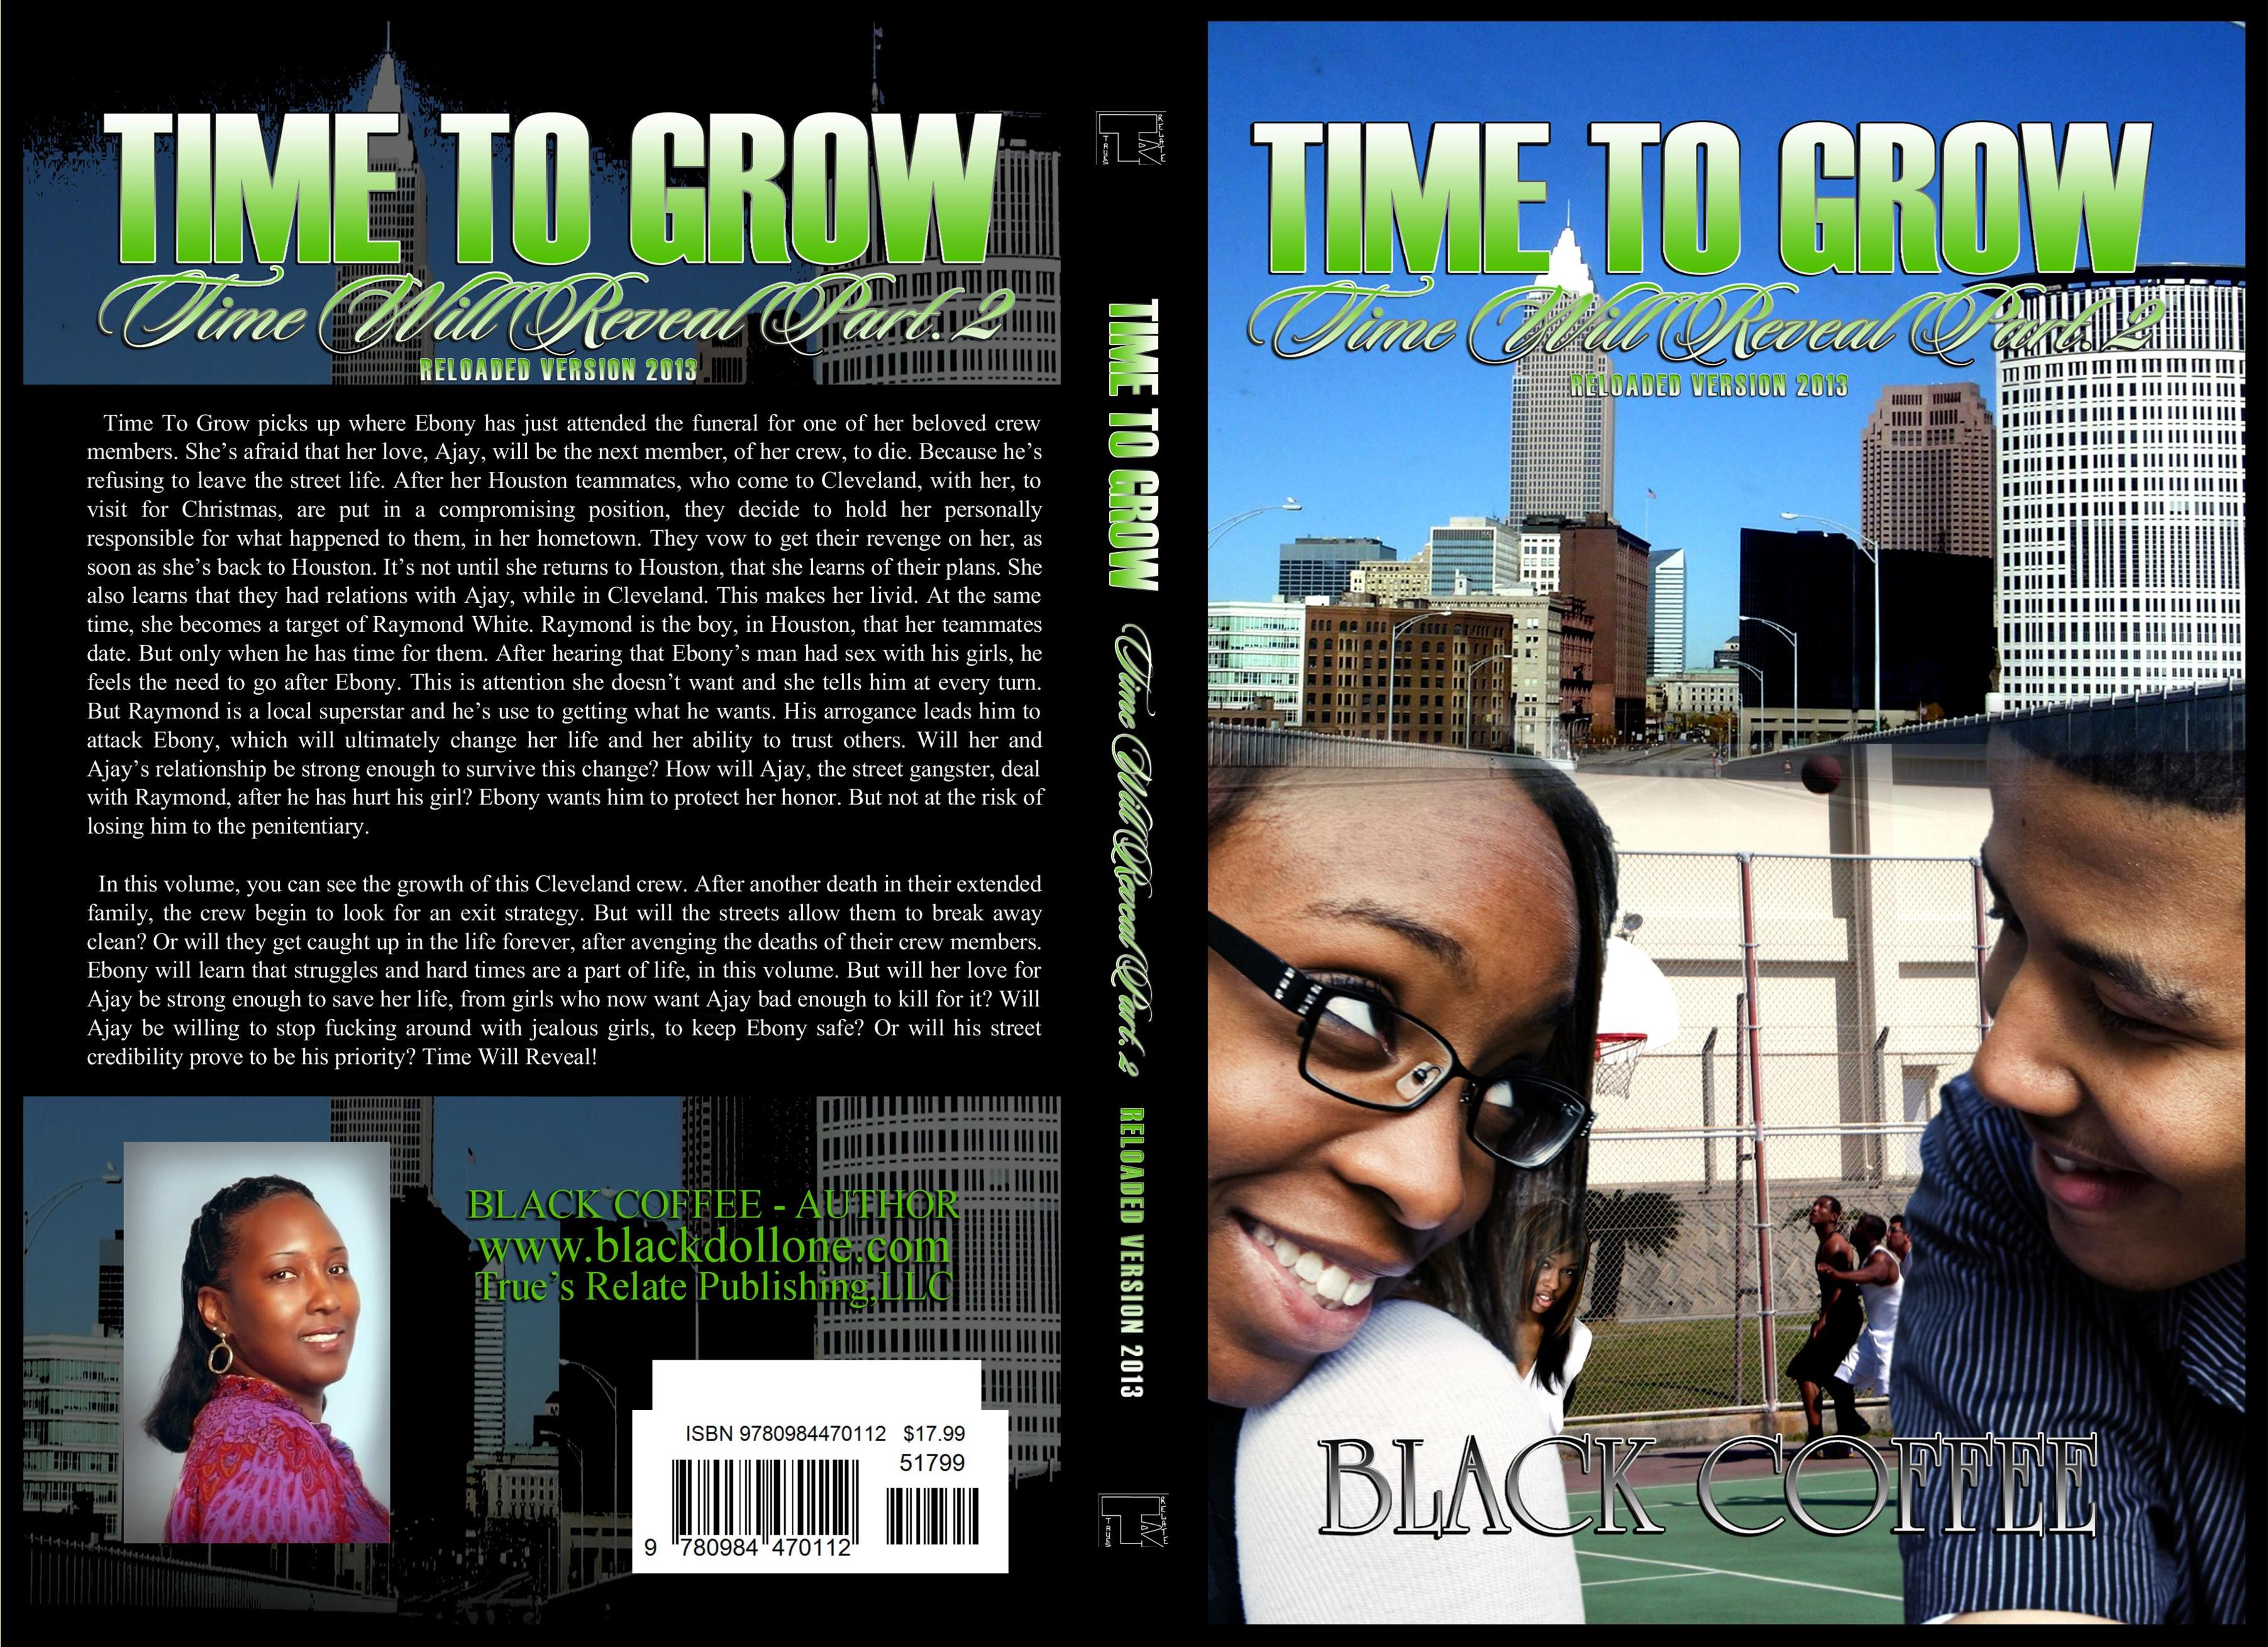 TIME TO GROW-RELOADED-Time Will Reveal part 2 cover image